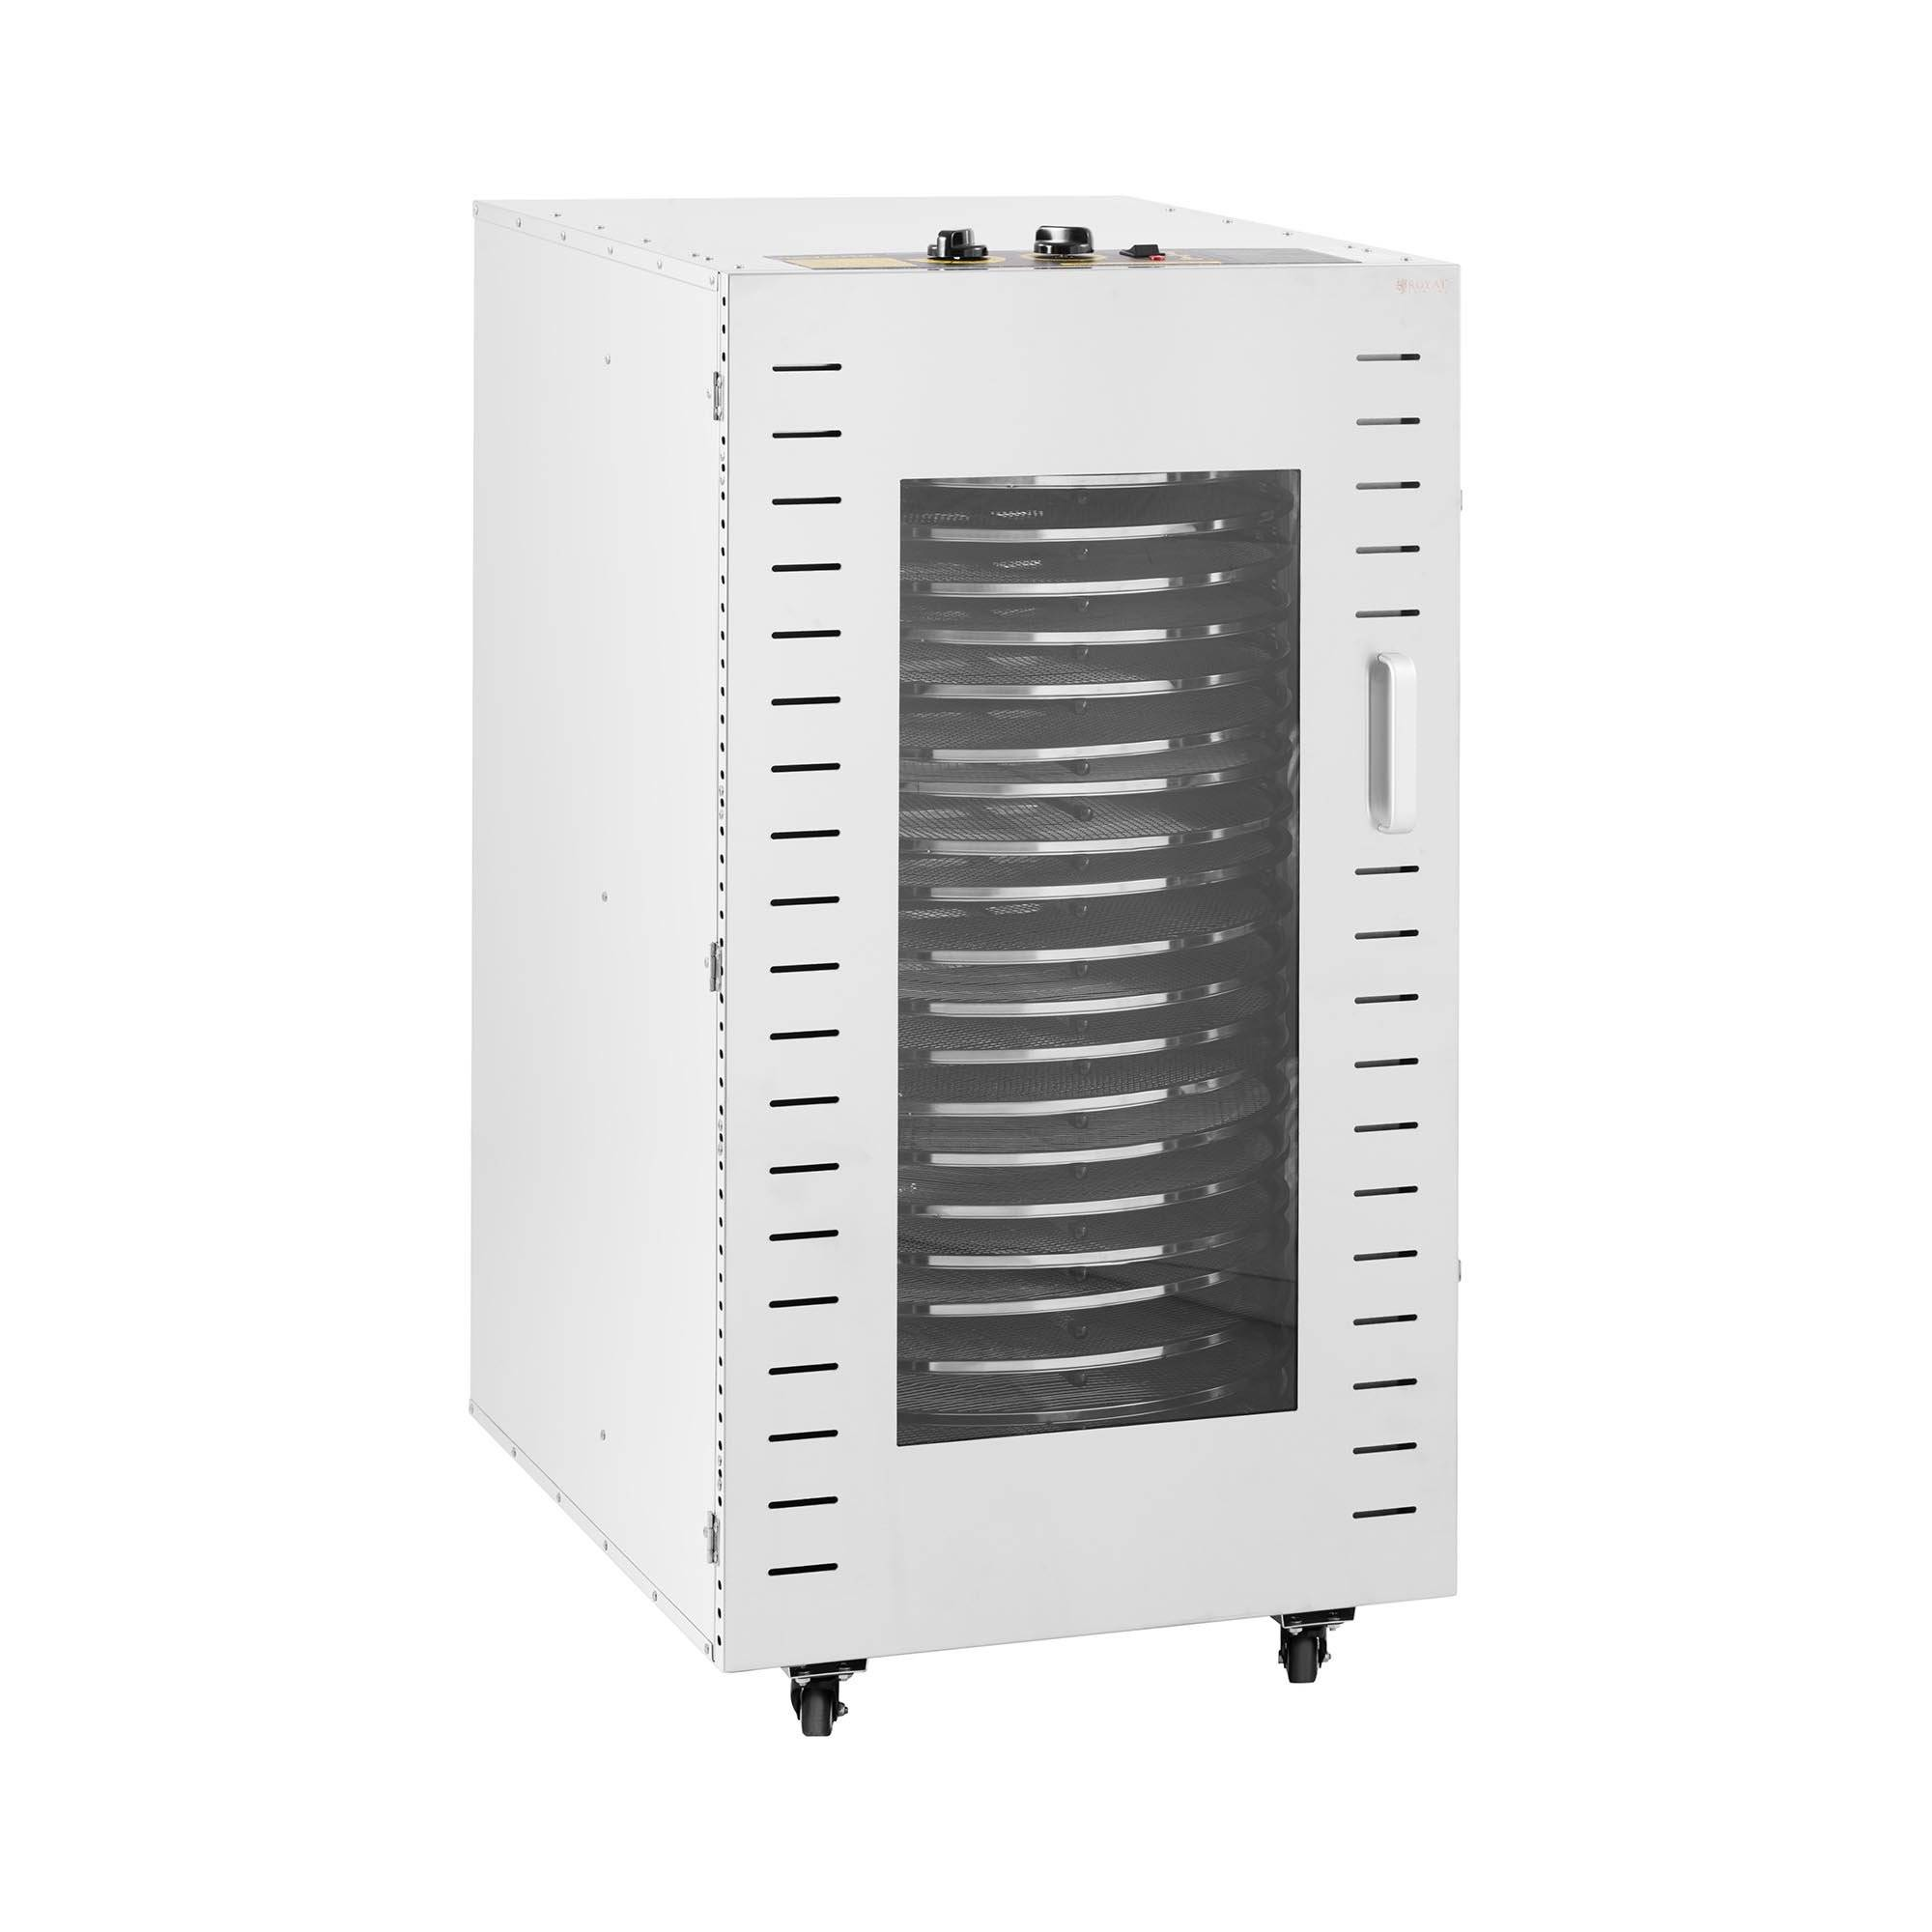 Royal Catering Déshydrateur alimentaire - 3 070 W - Royal Catering - 22 étages RCDA-297S